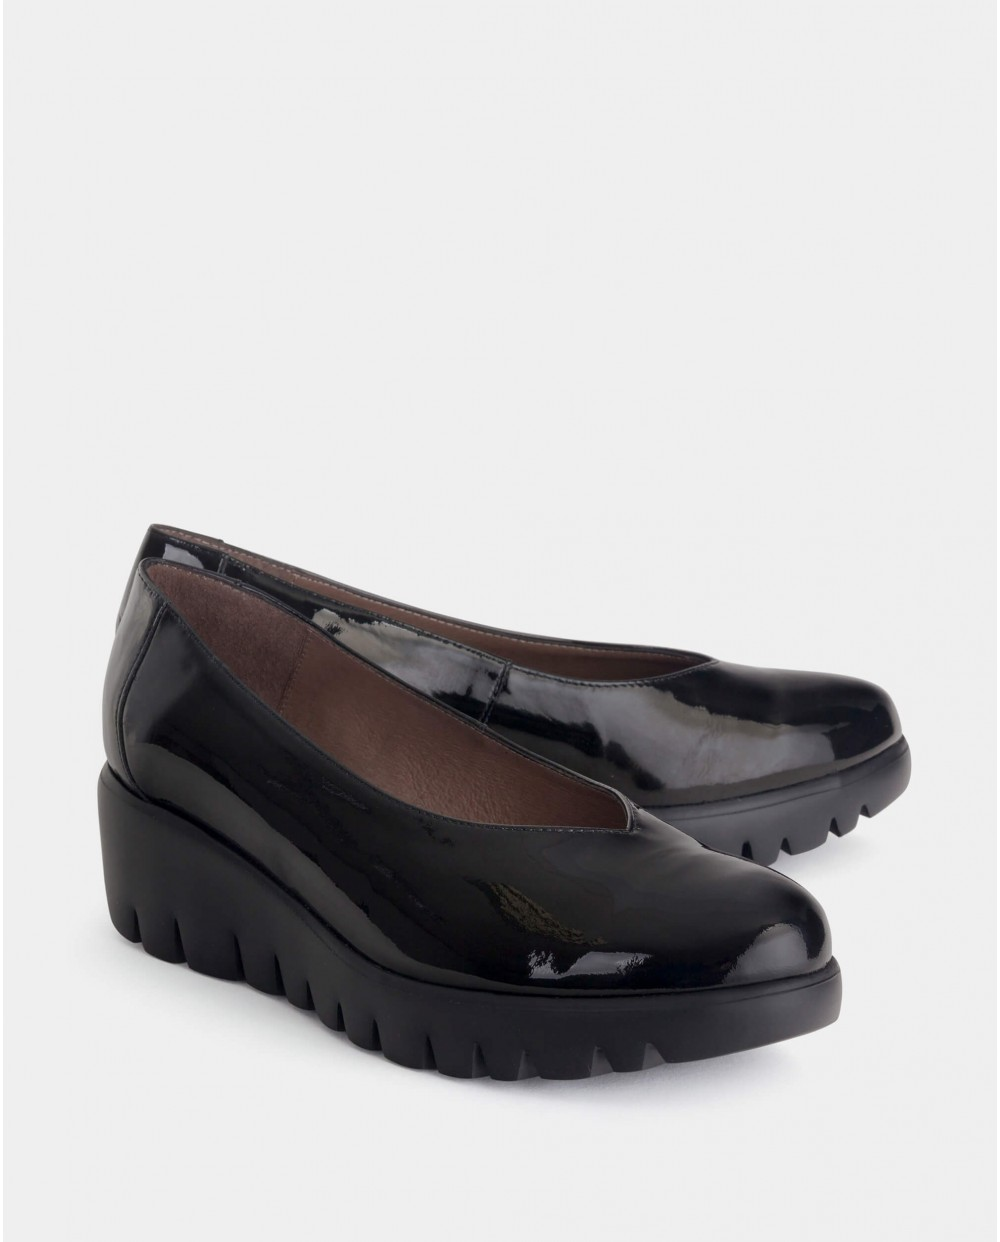 High cut patent leather loafer